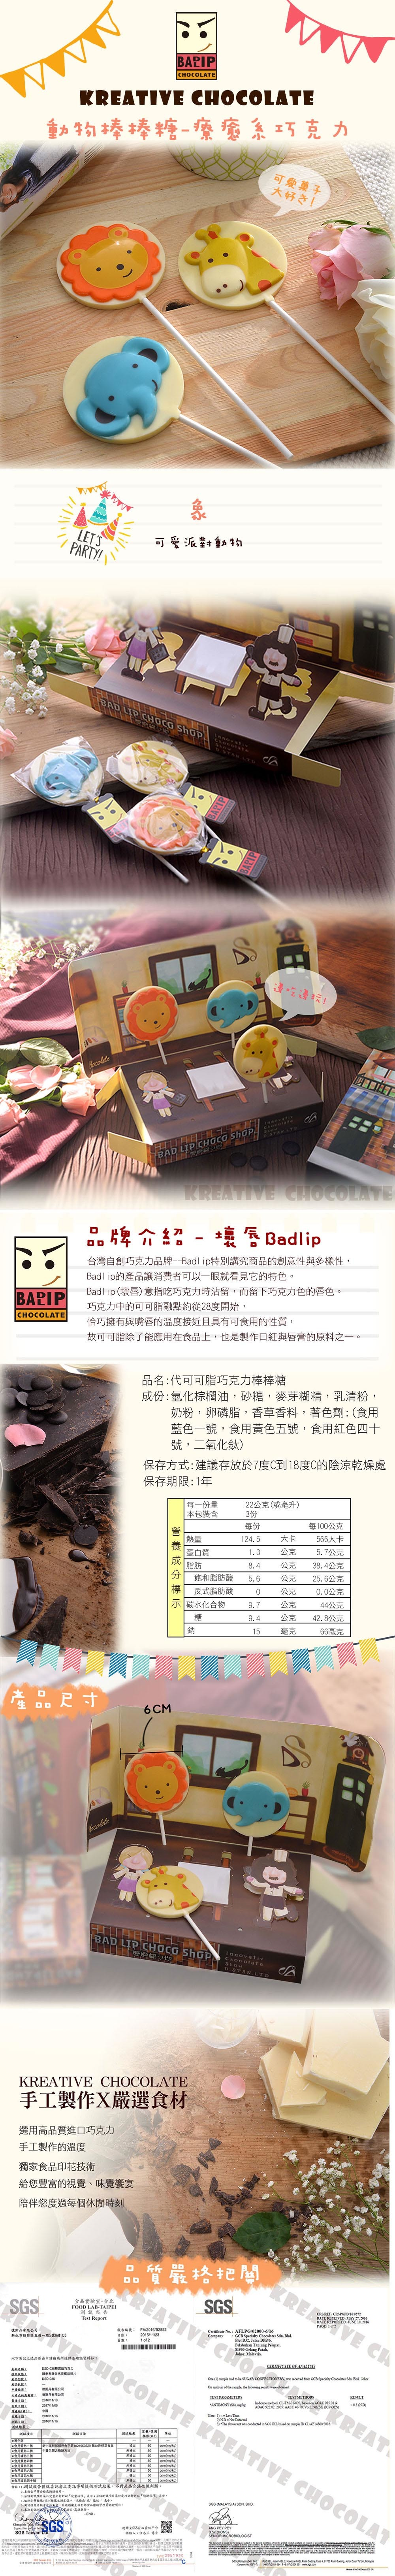 療癒系動物造型巧克力棒棒糖-大象 (22g/支)|Kreative Chocolate創意巧克力